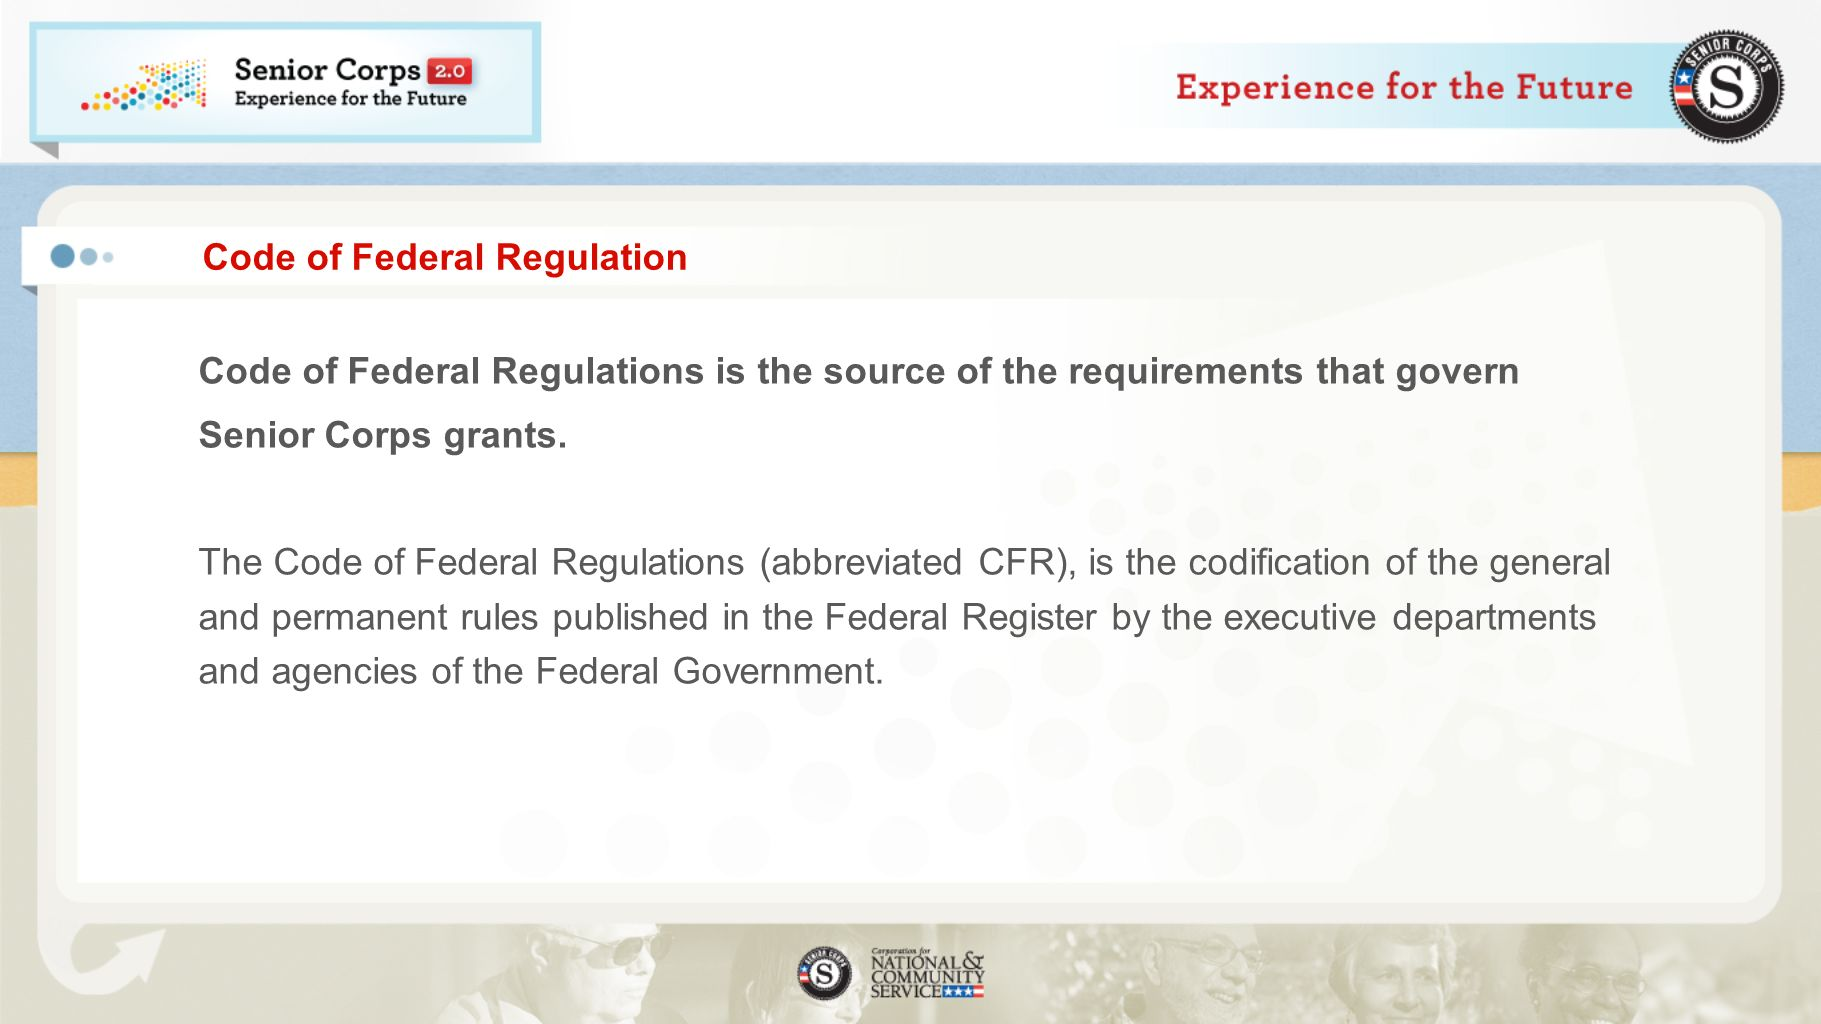 Code of Federal Regulation